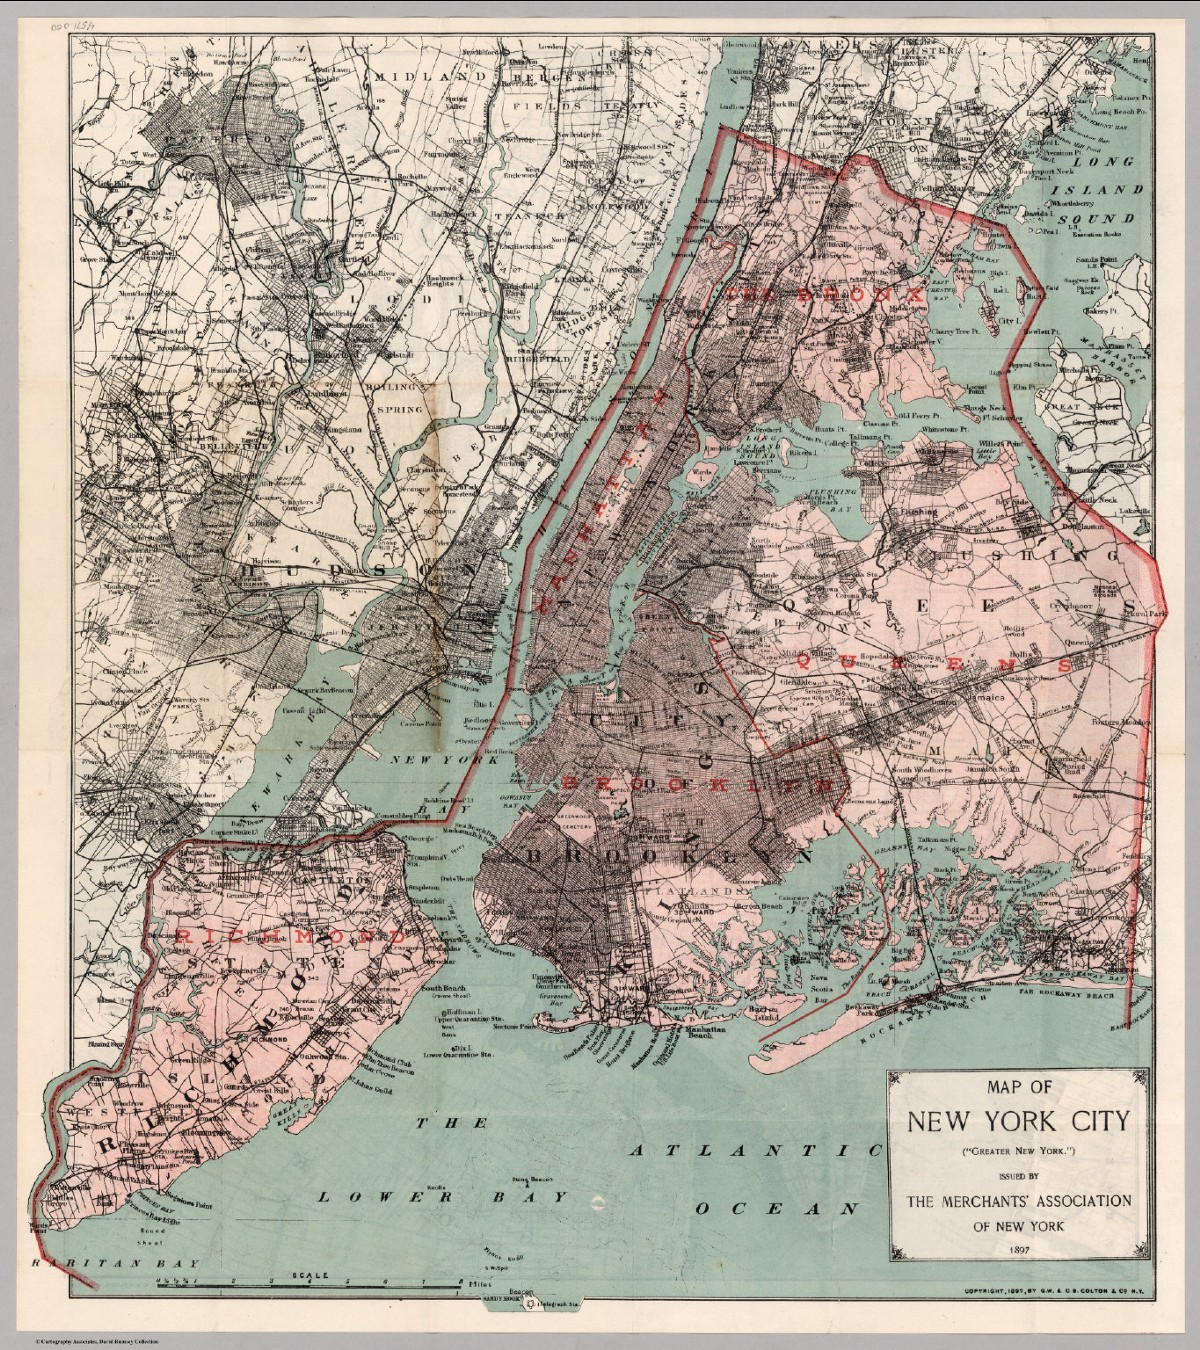 Map of the Five Boroughs of New York City